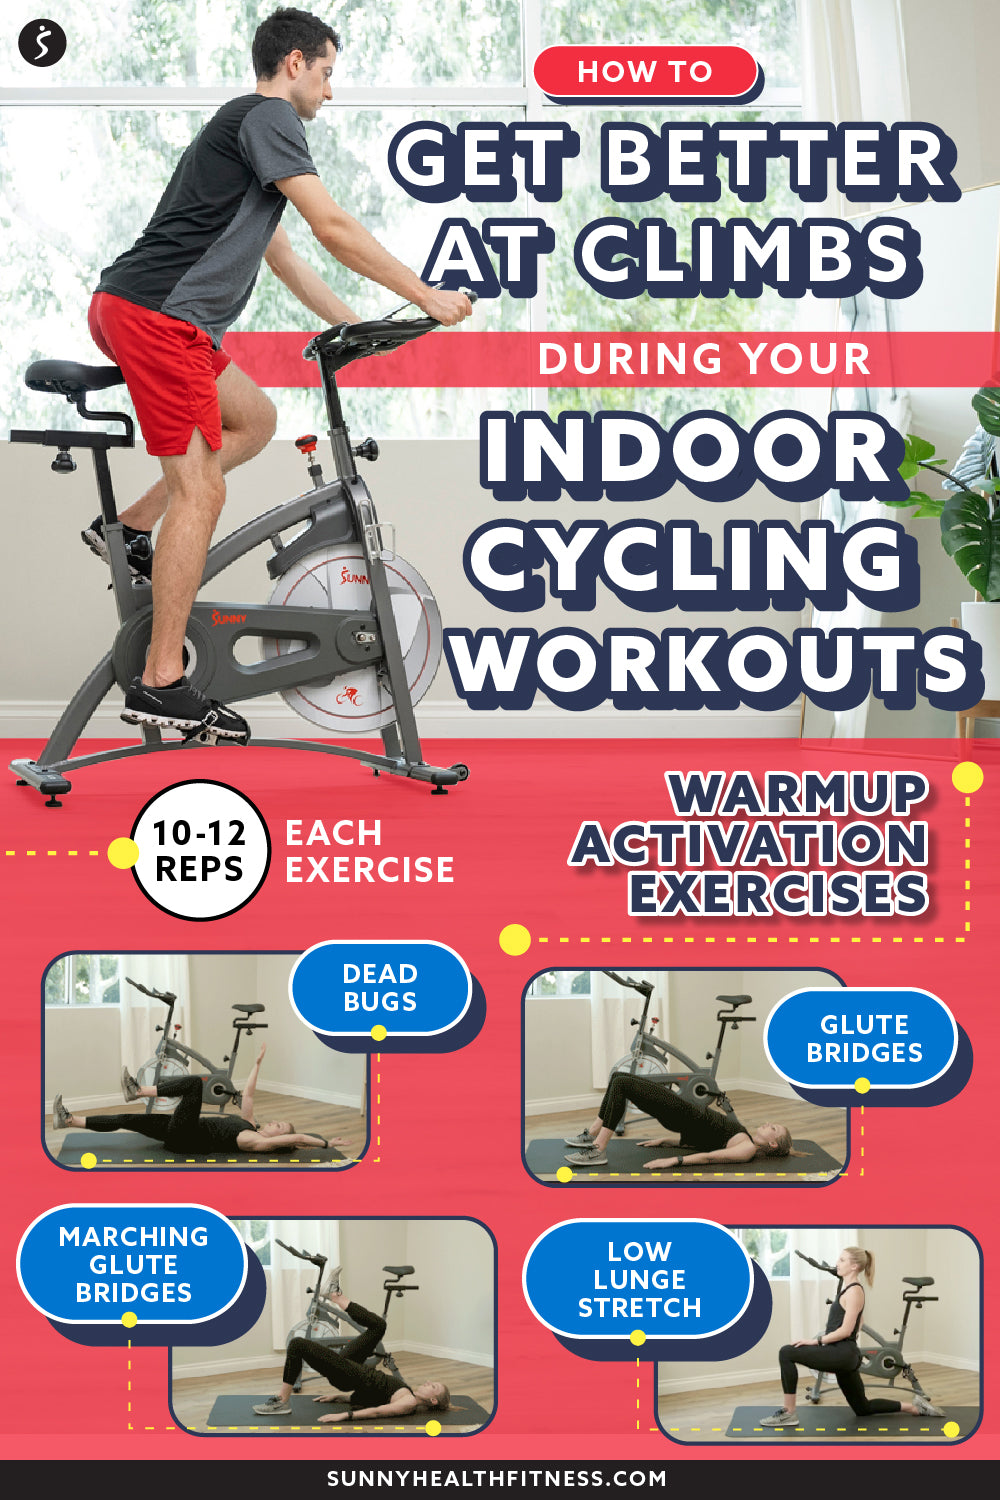 Indoor-Climb-Cycling-Warm-Up-Activation-Exercise